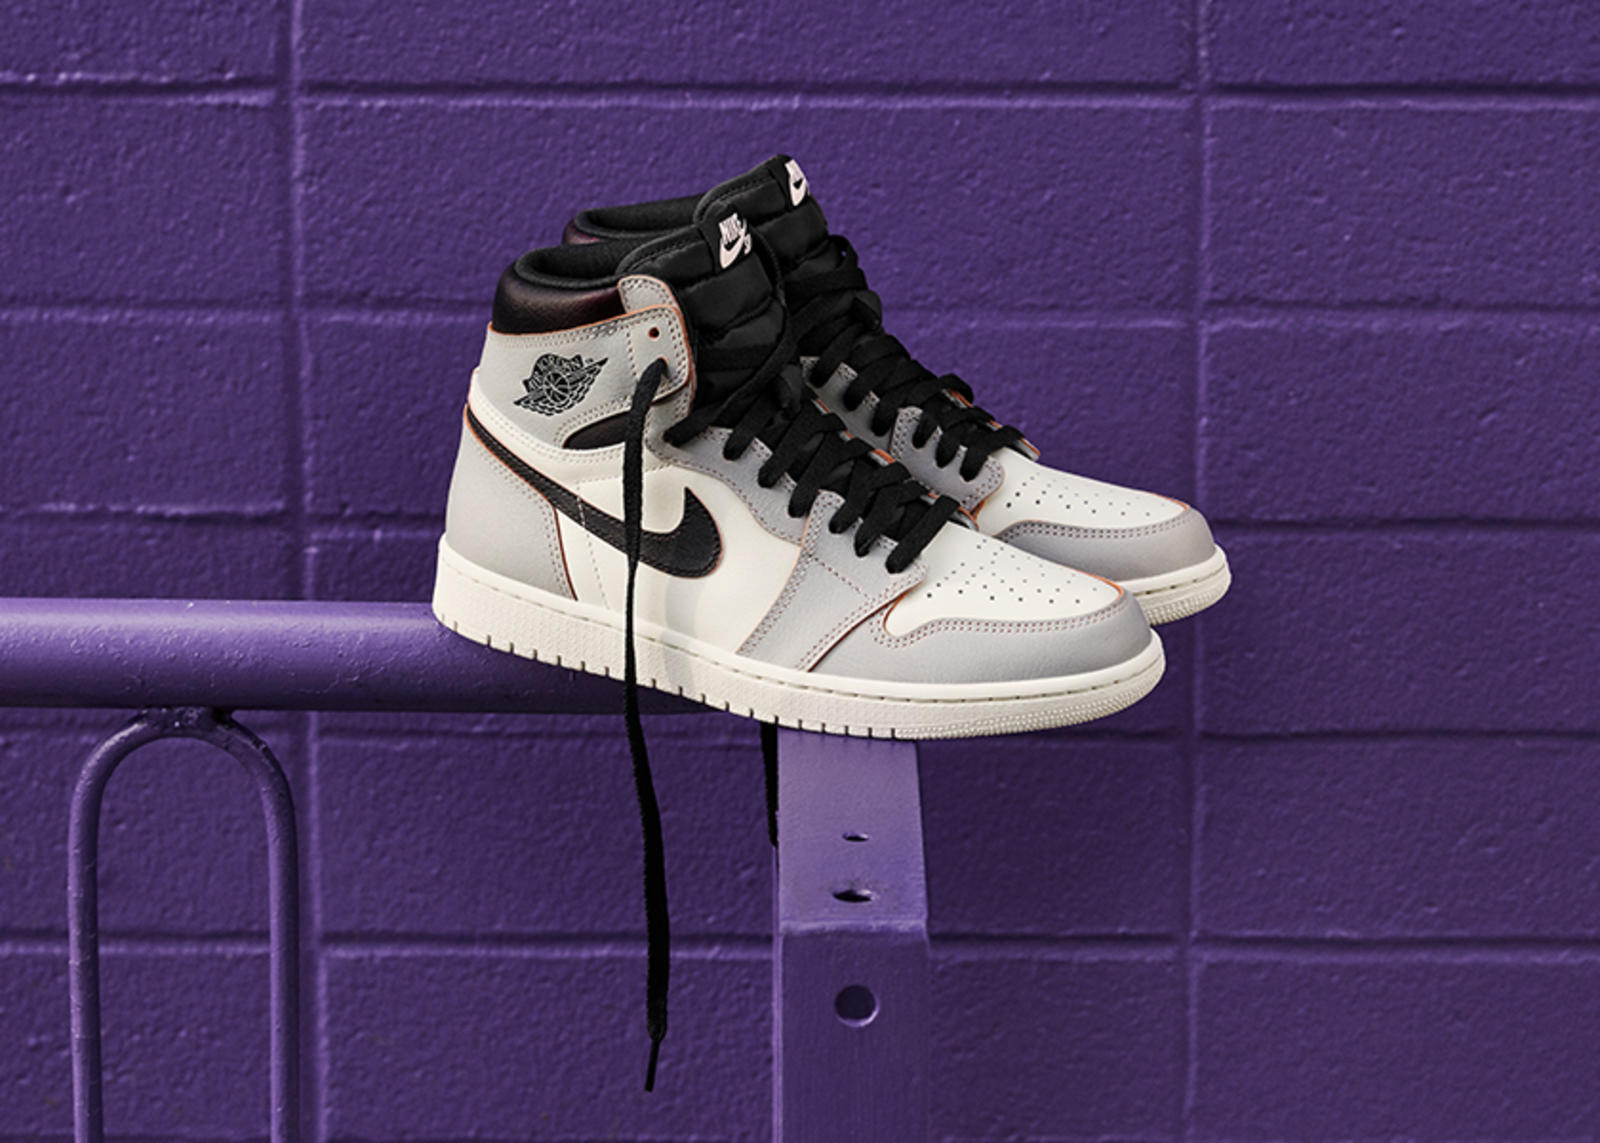 SU19_JD_TheOnes_NIKENEWS_AJ1_HIGH_native_1600.jpg